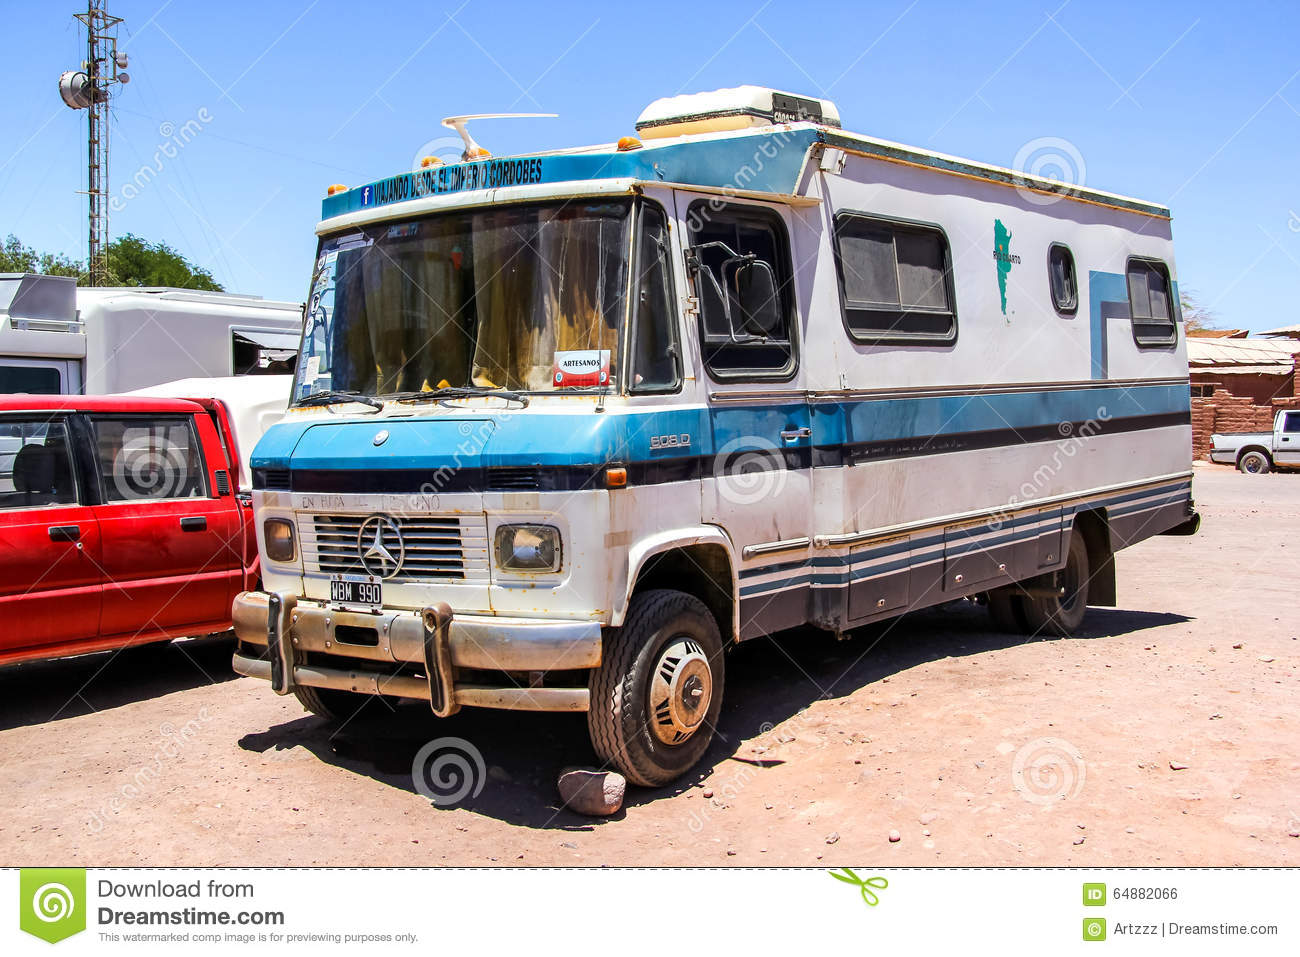 Mercedes Benz 608d Editorial Photo Image Of Countryside 64882066 Camper Download